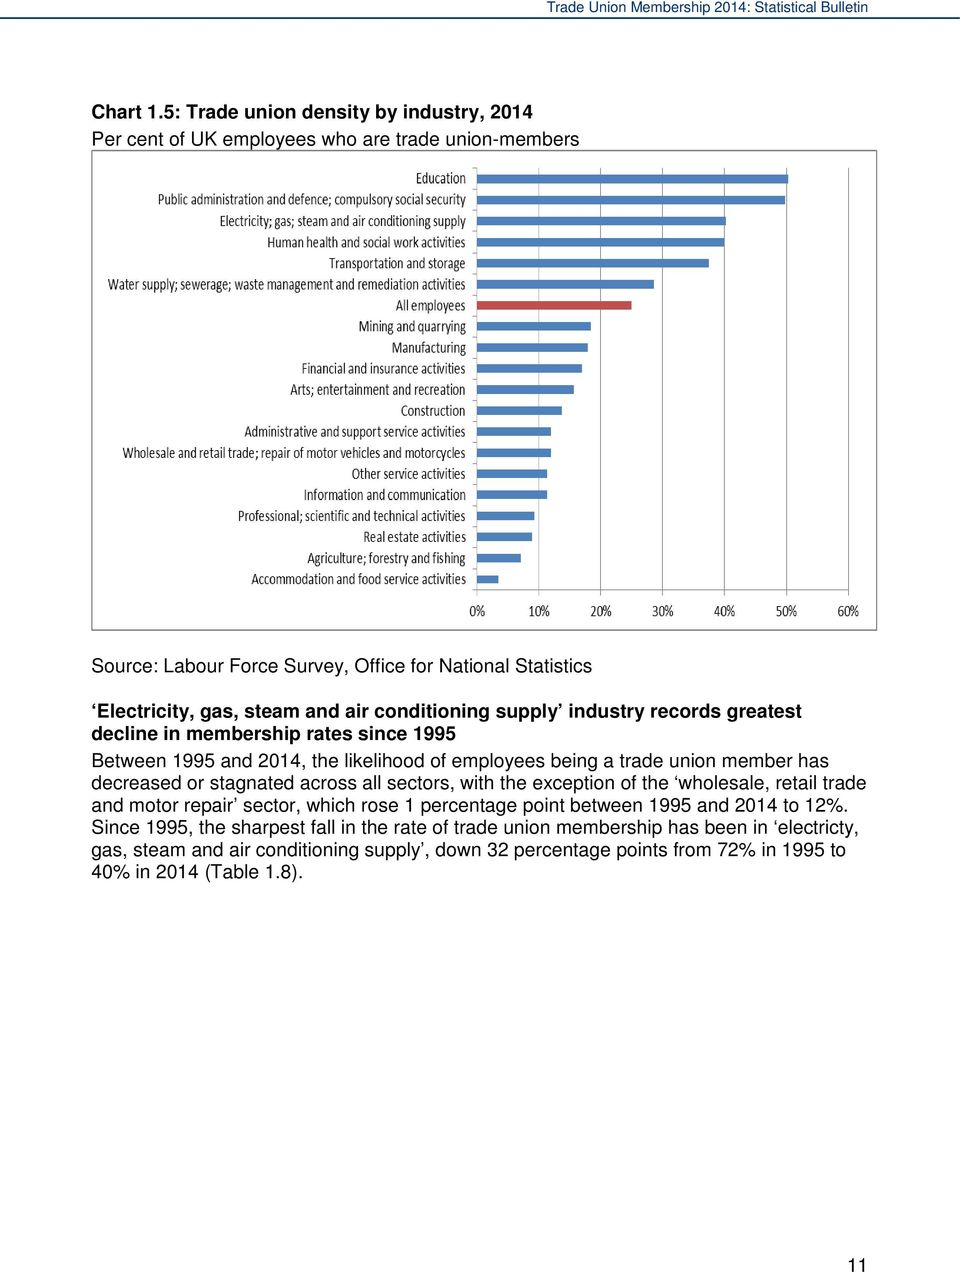 conditioning supply industry records greatest decline in membership rates since 1995 Between 1995 and 2014, the likelihood of employees being a trade union member has decreased or